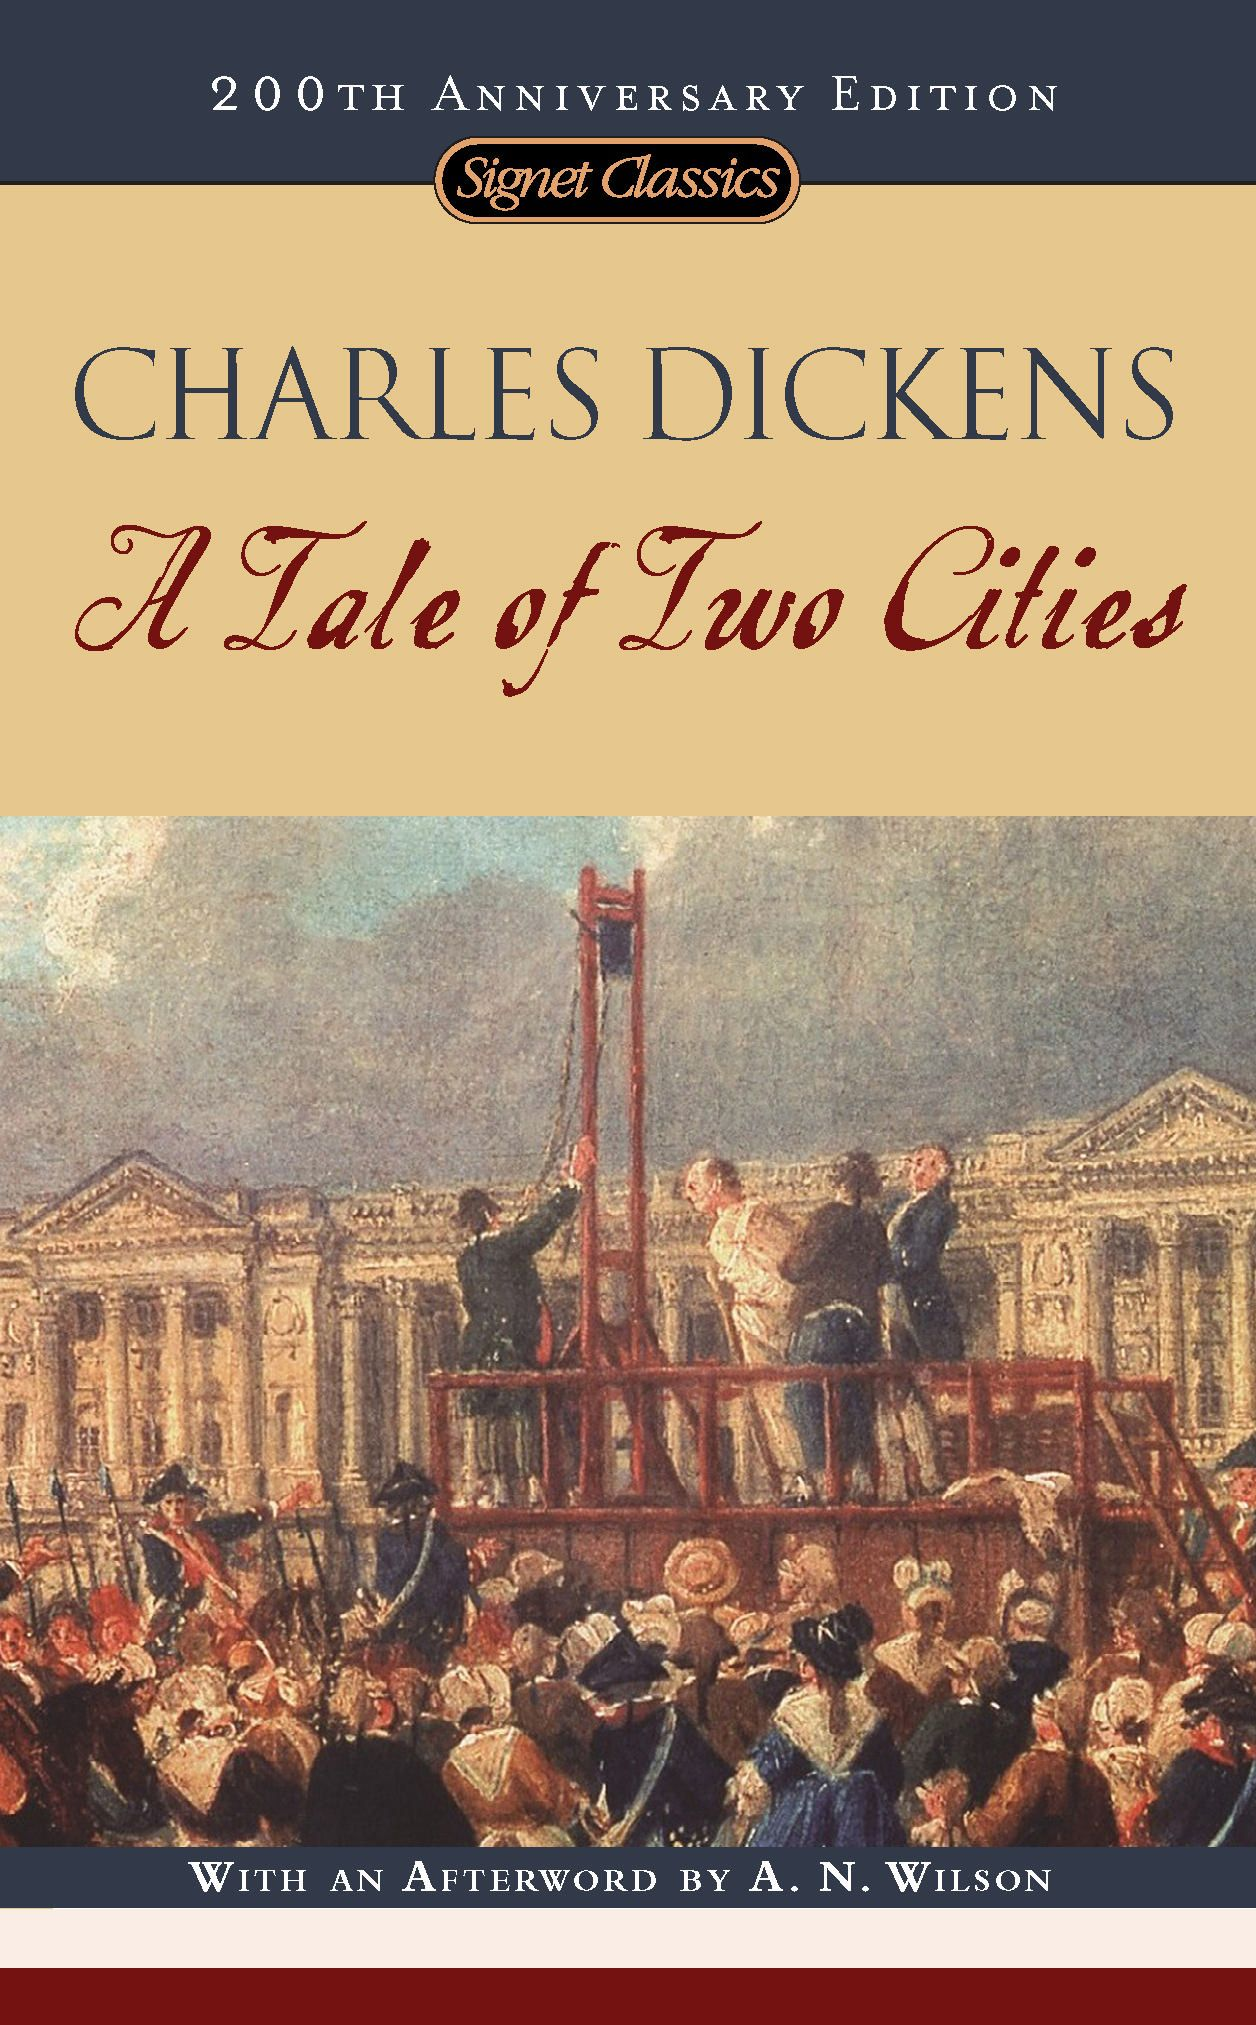 an analysis of the charles darnays sentence and the concept by charles dickens Dickens dwells in the concept of dickens portrays himself through charles darnay in the fact that dickens and analysis of charles dickens' writing.